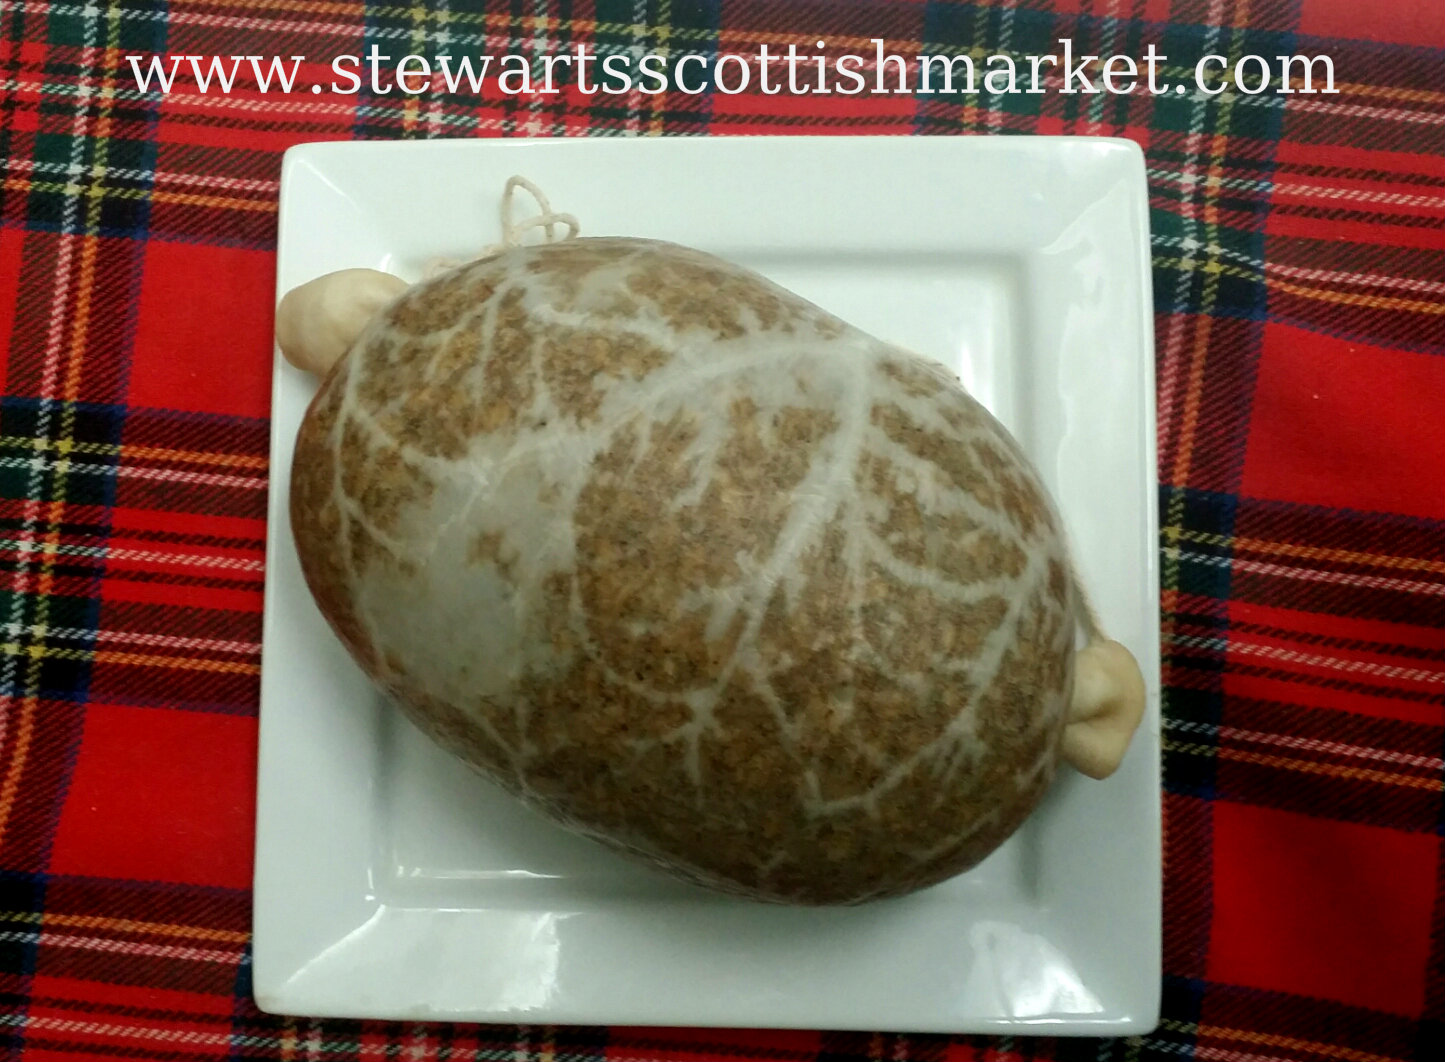 Haggis traditional Scottish dish